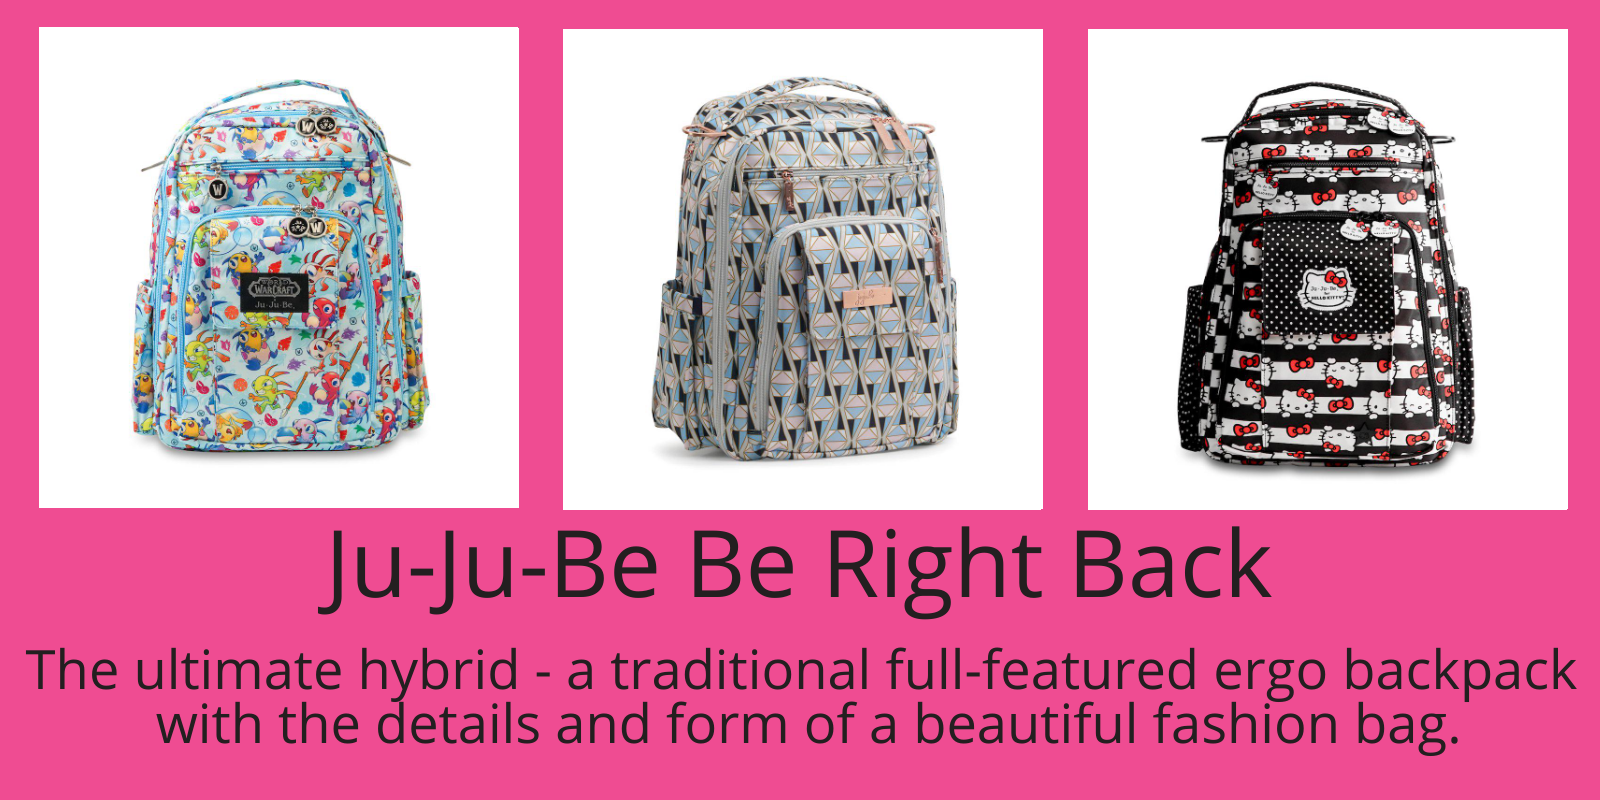 The Be Right Back - A Great Diaper Bag for the Whole Family!